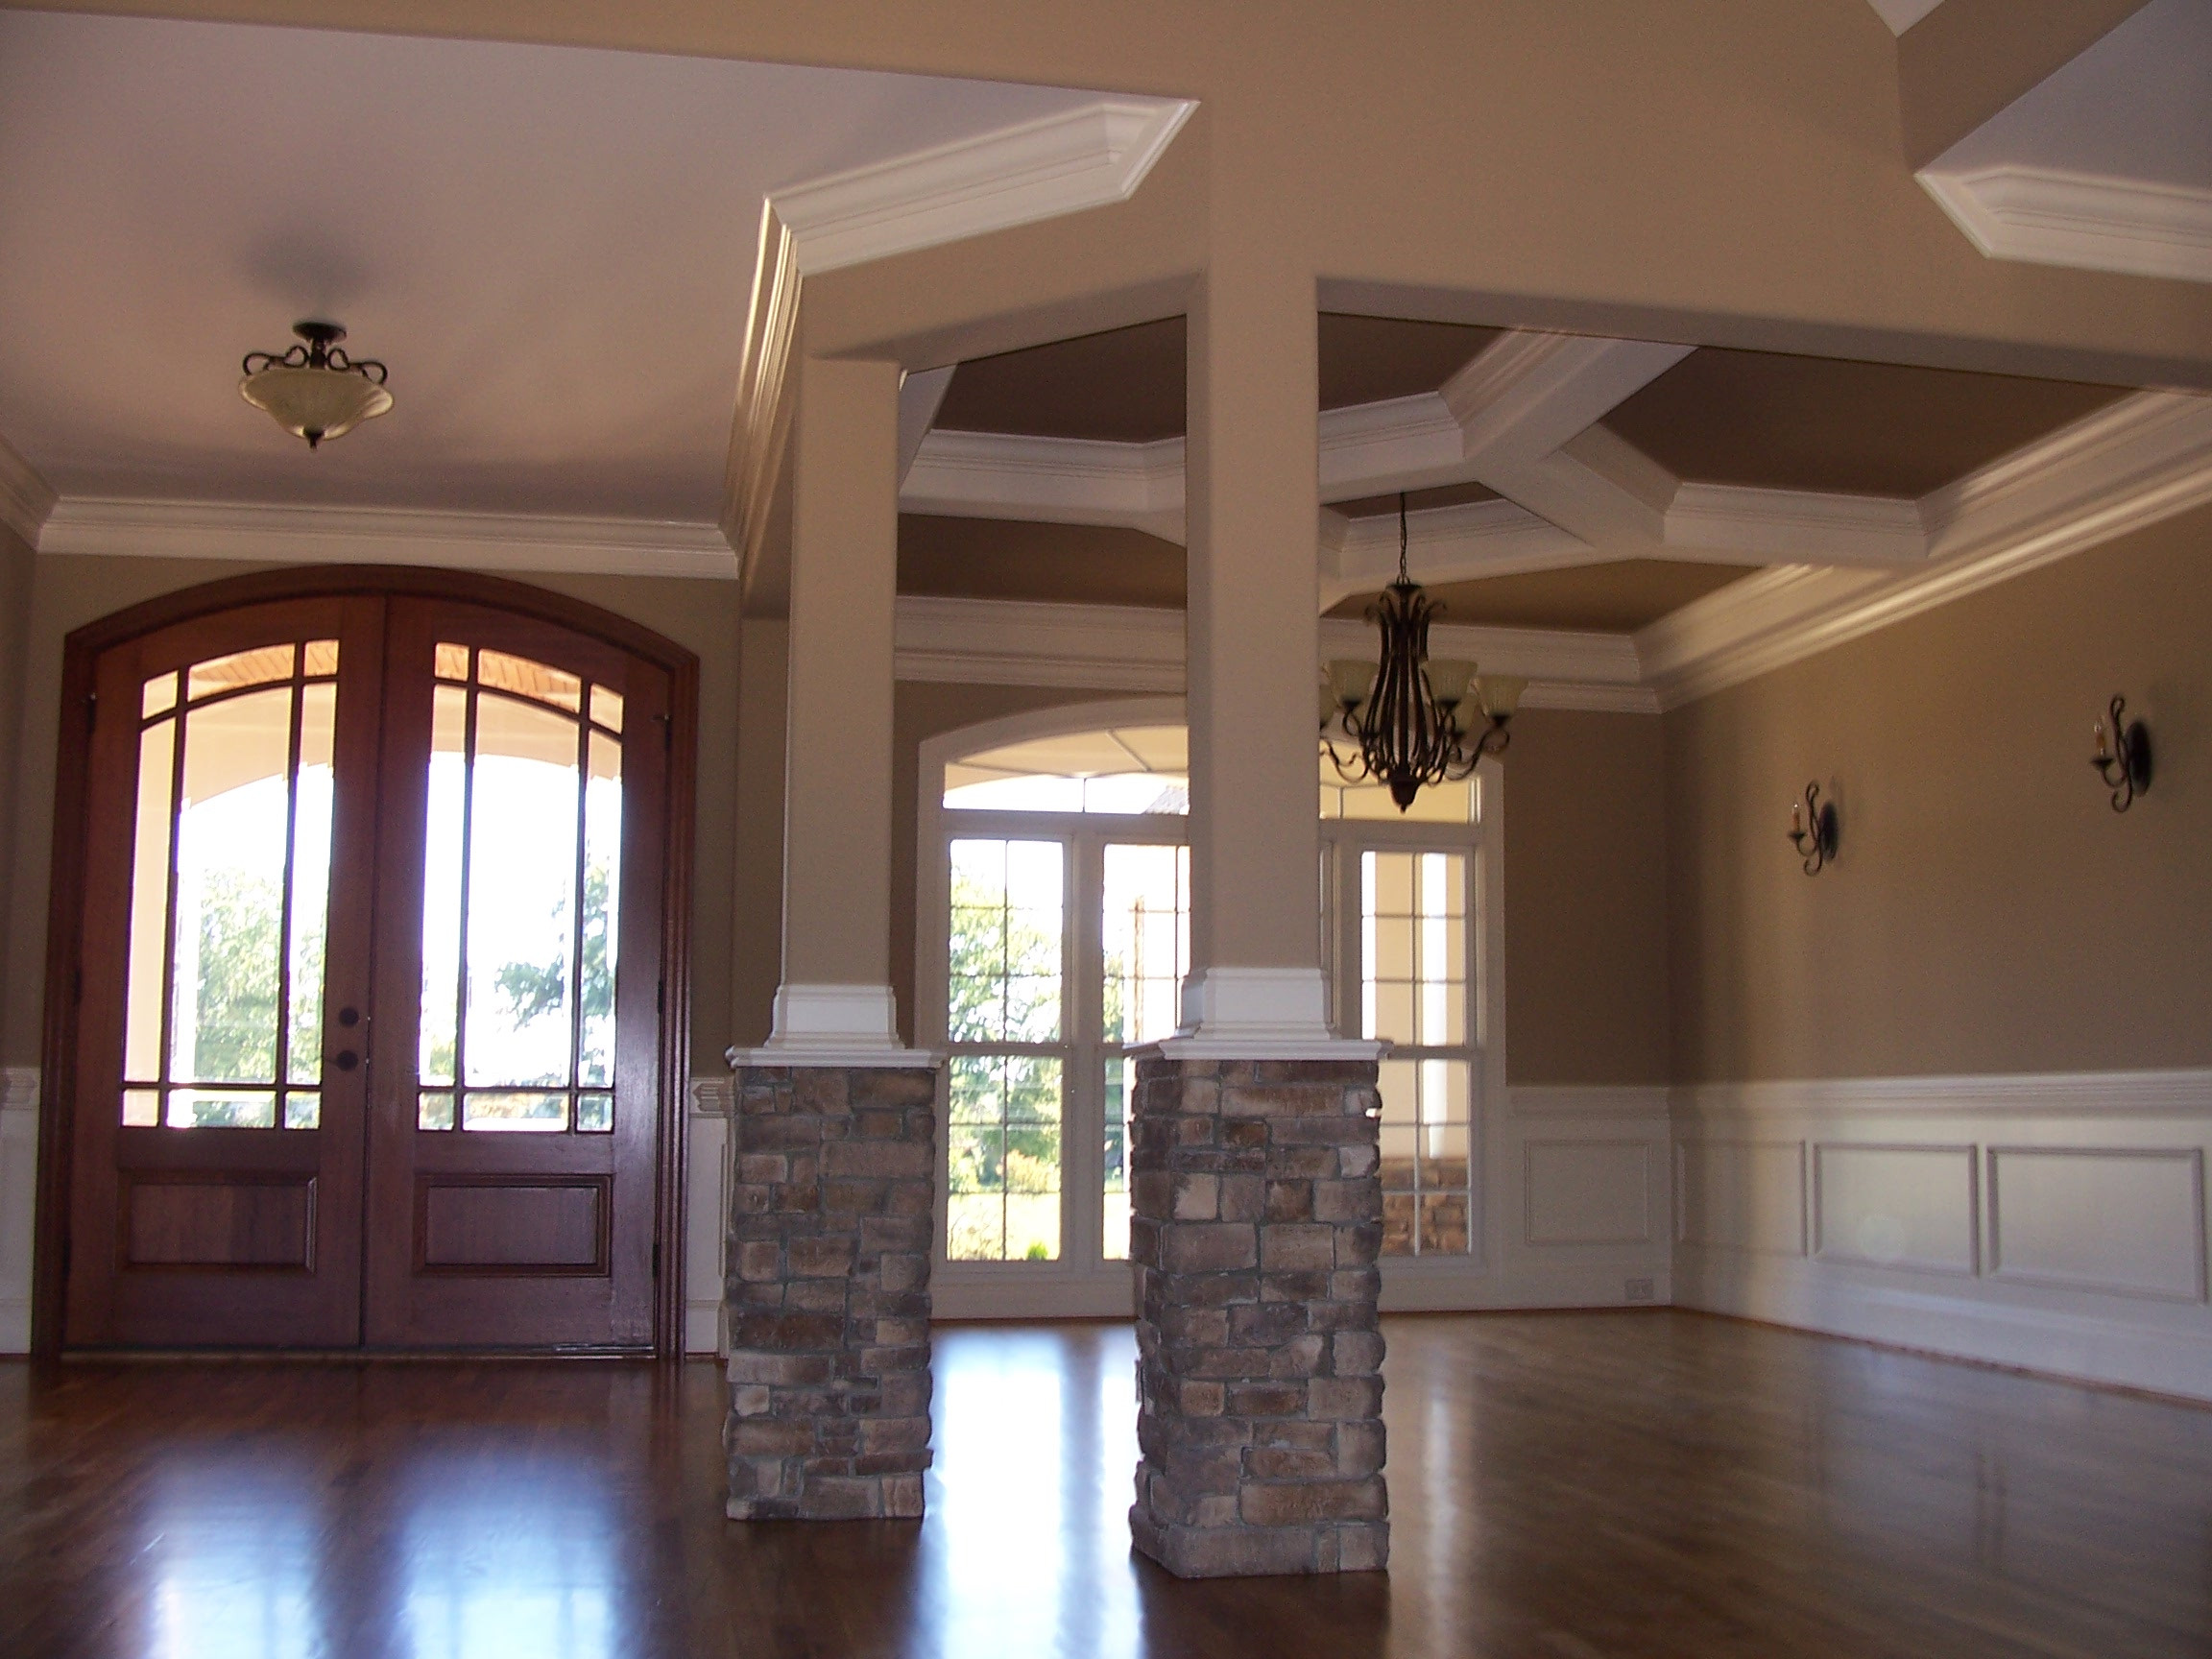 Best ideas about Interior Paint Colors . Save or Pin Atlantic Drywall and Paint Now.